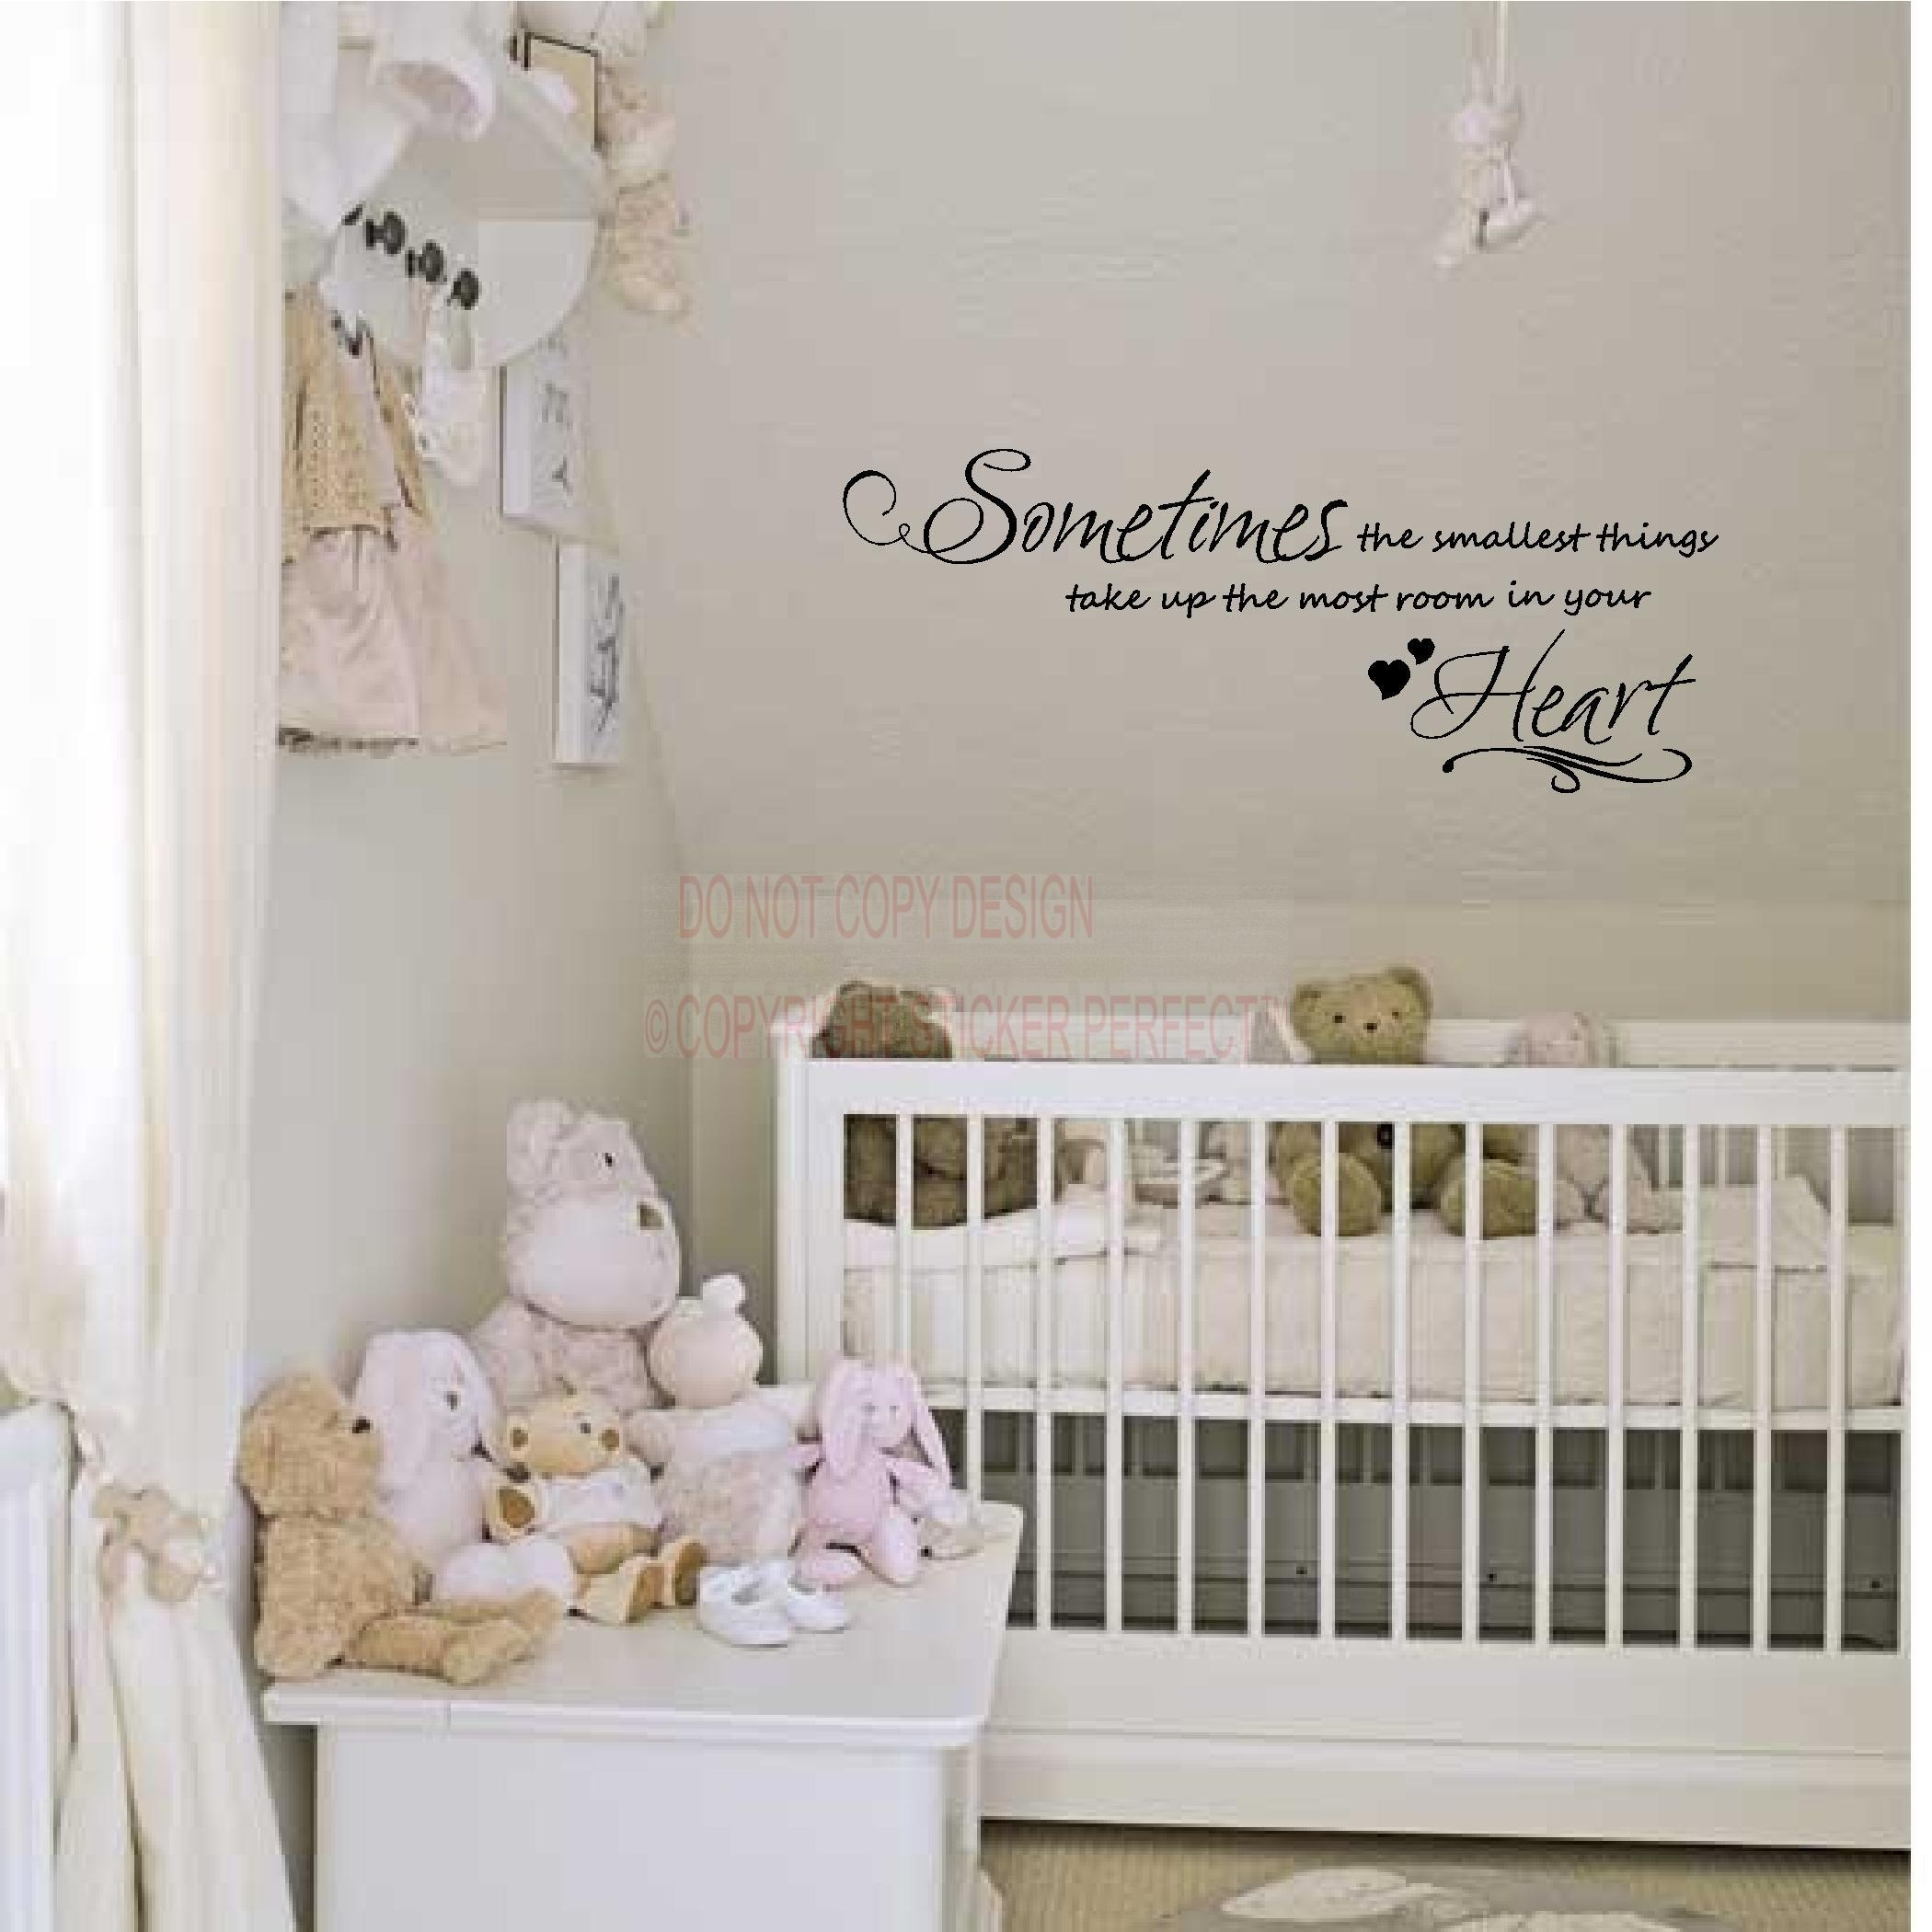 3 Sometimes The Smallest Things Take Up The Most Room In Your With Winnie The Pooh Wall Art For Nursery (Image 1 of 20)